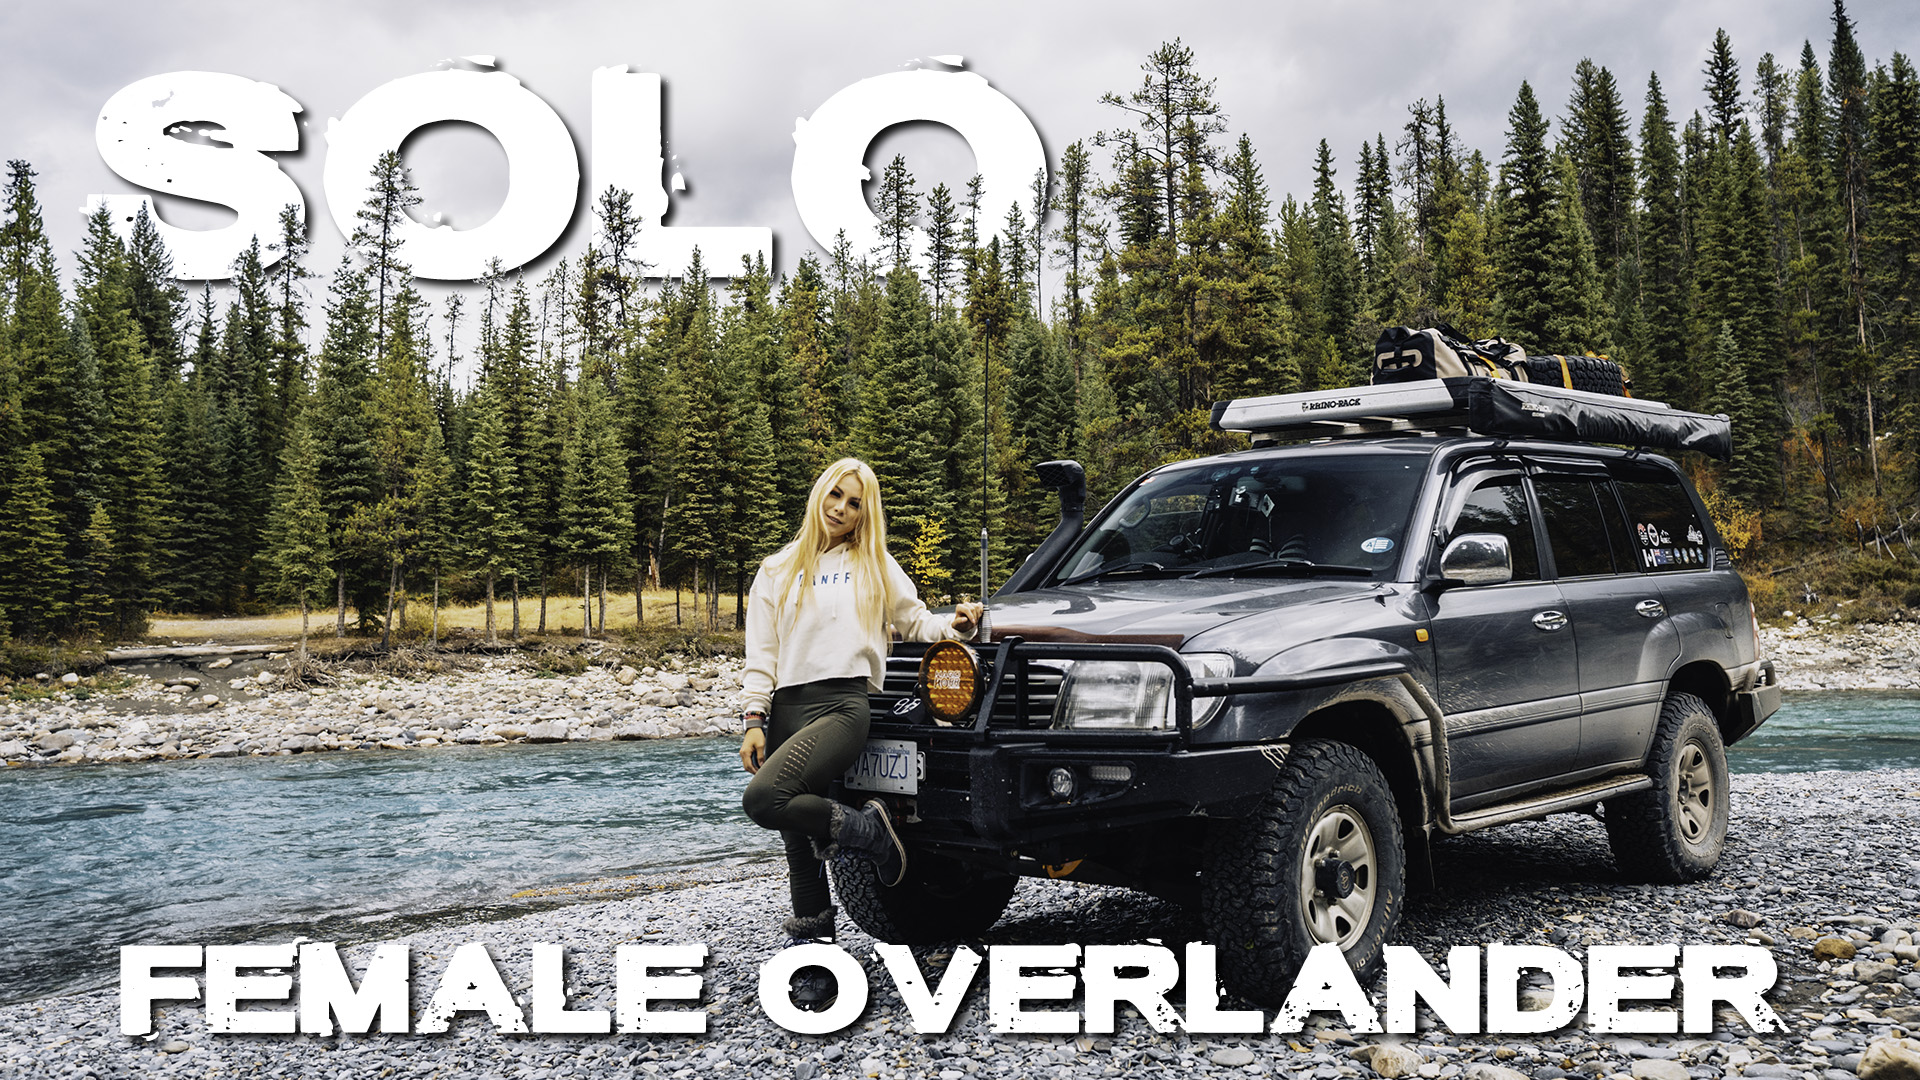 Solo overlanding safety tips